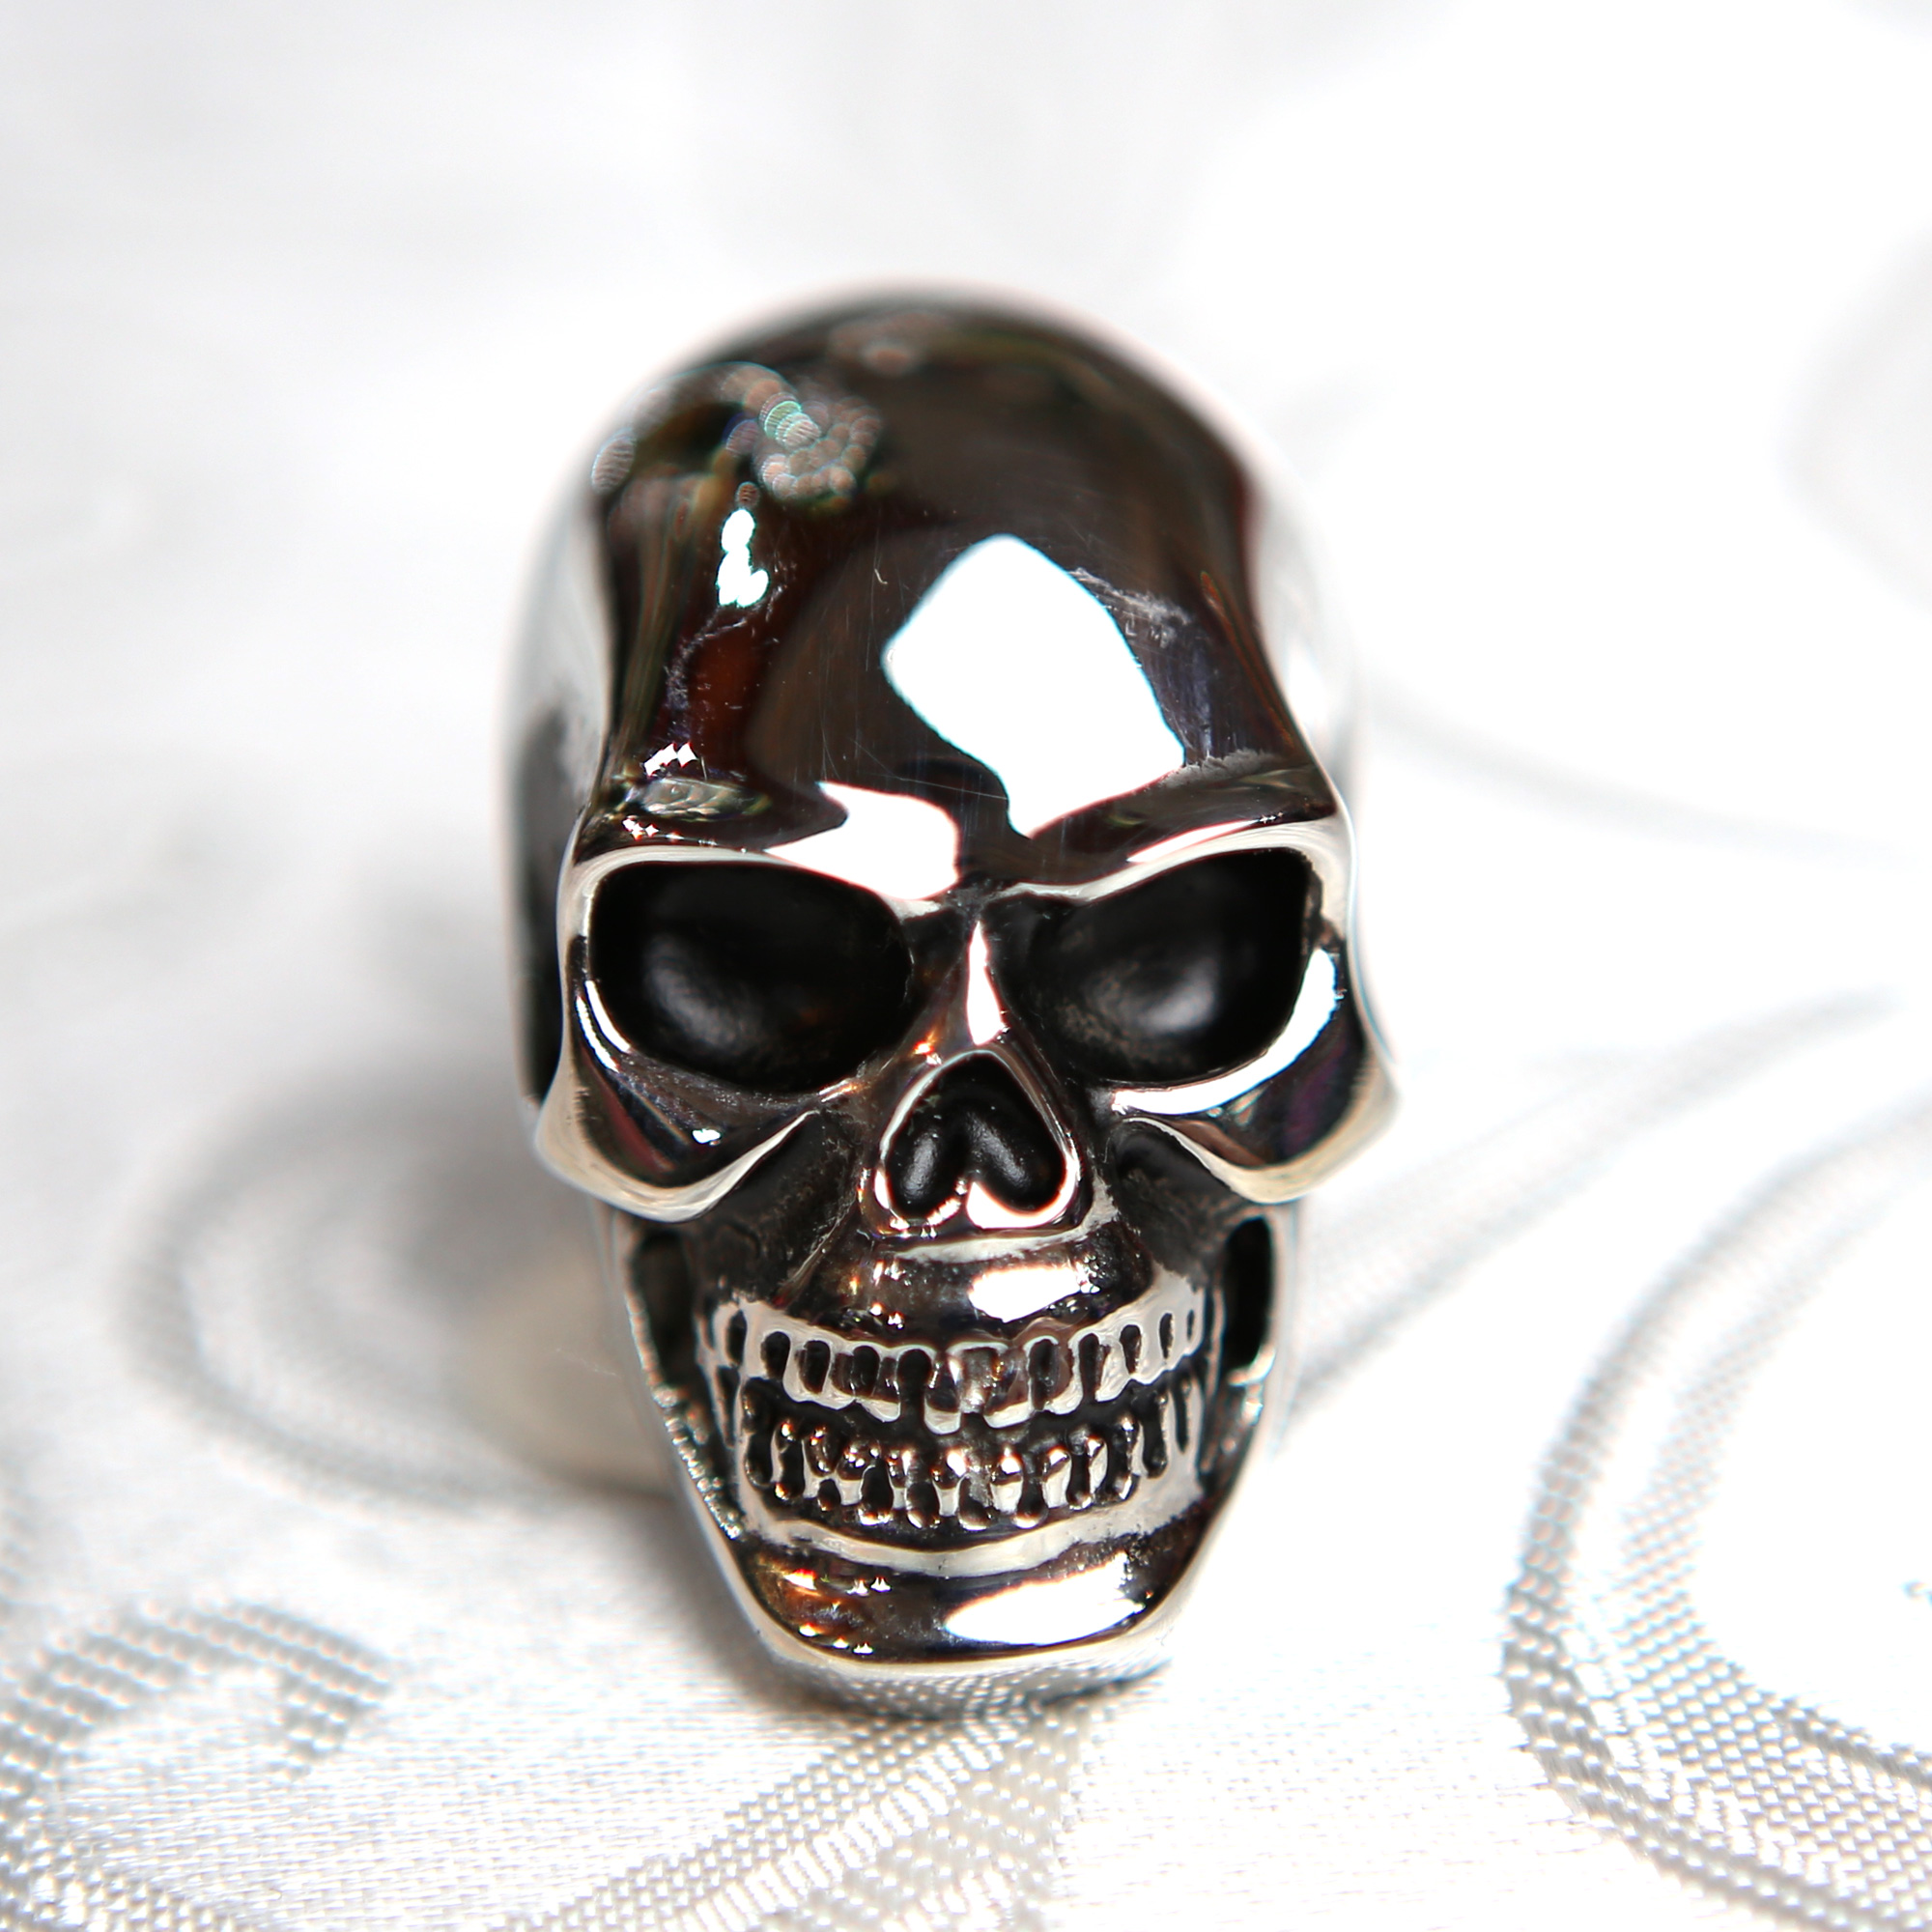 bague acier cr ne t te de mort big skull gothique bgt11 bijoux bagues acier cadoshop. Black Bedroom Furniture Sets. Home Design Ideas